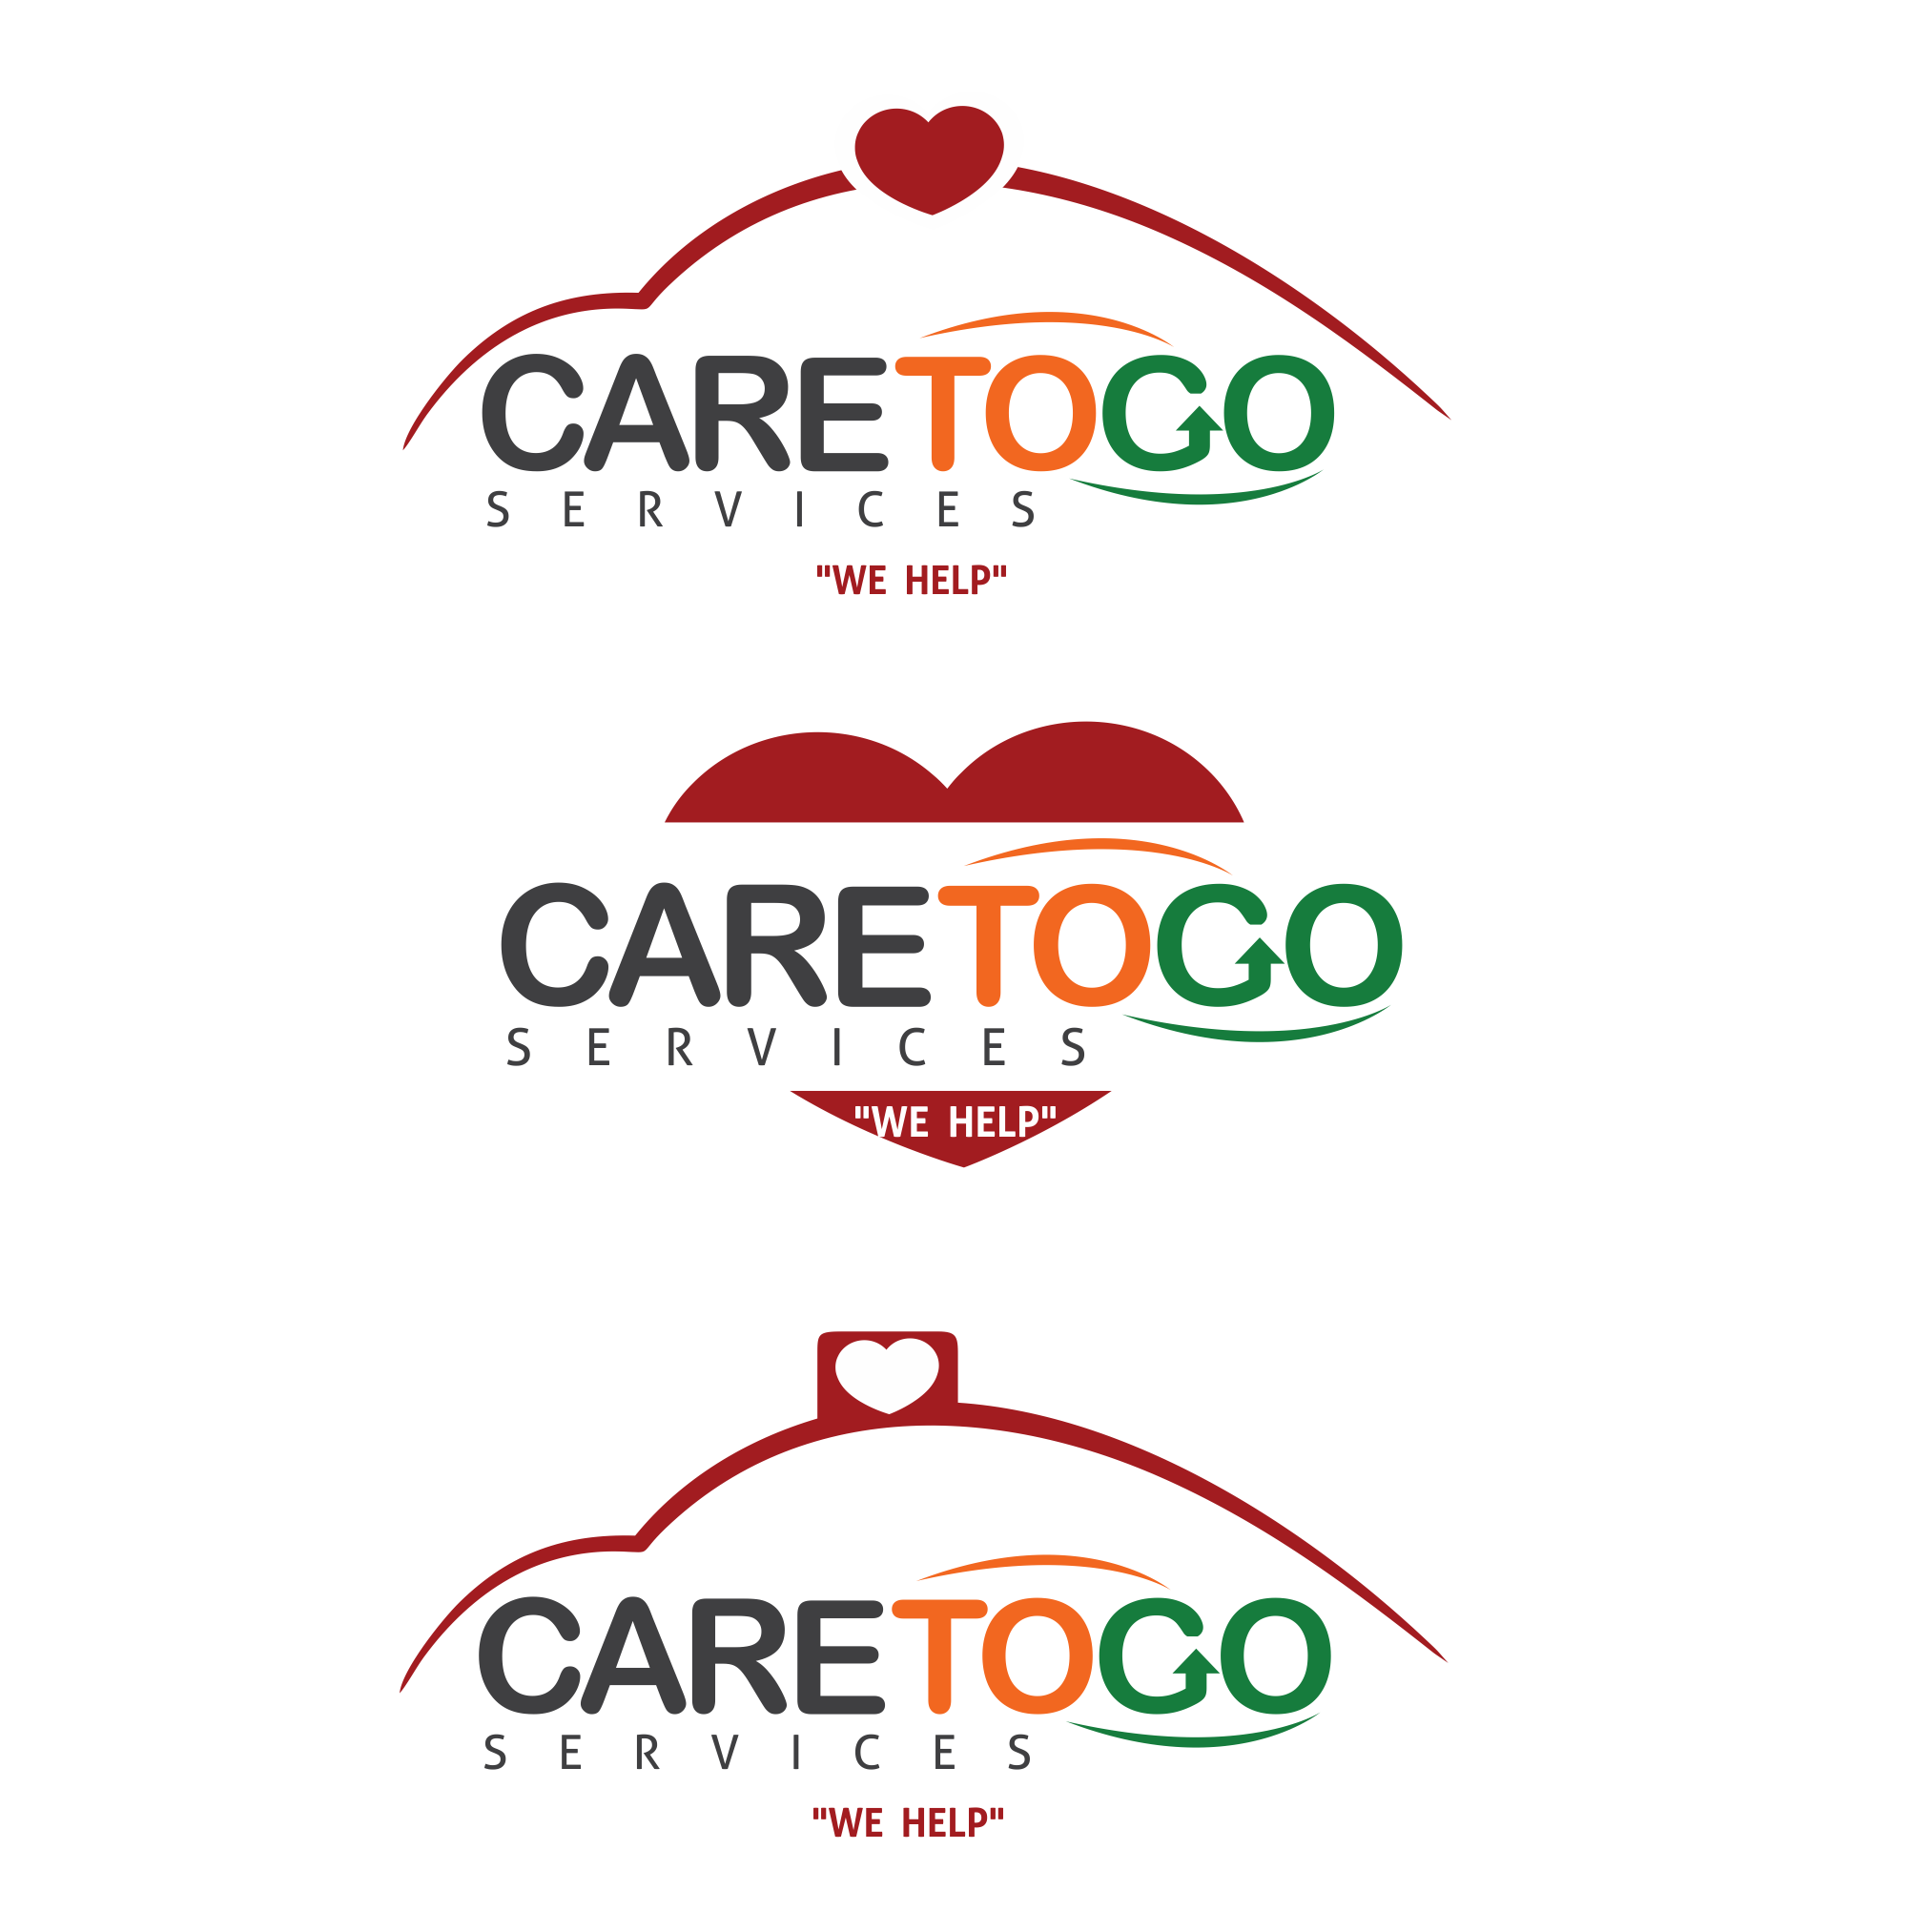 Logo Design by moisesf - Entry No. 190 in the Logo Design Contest Care To Go Services.